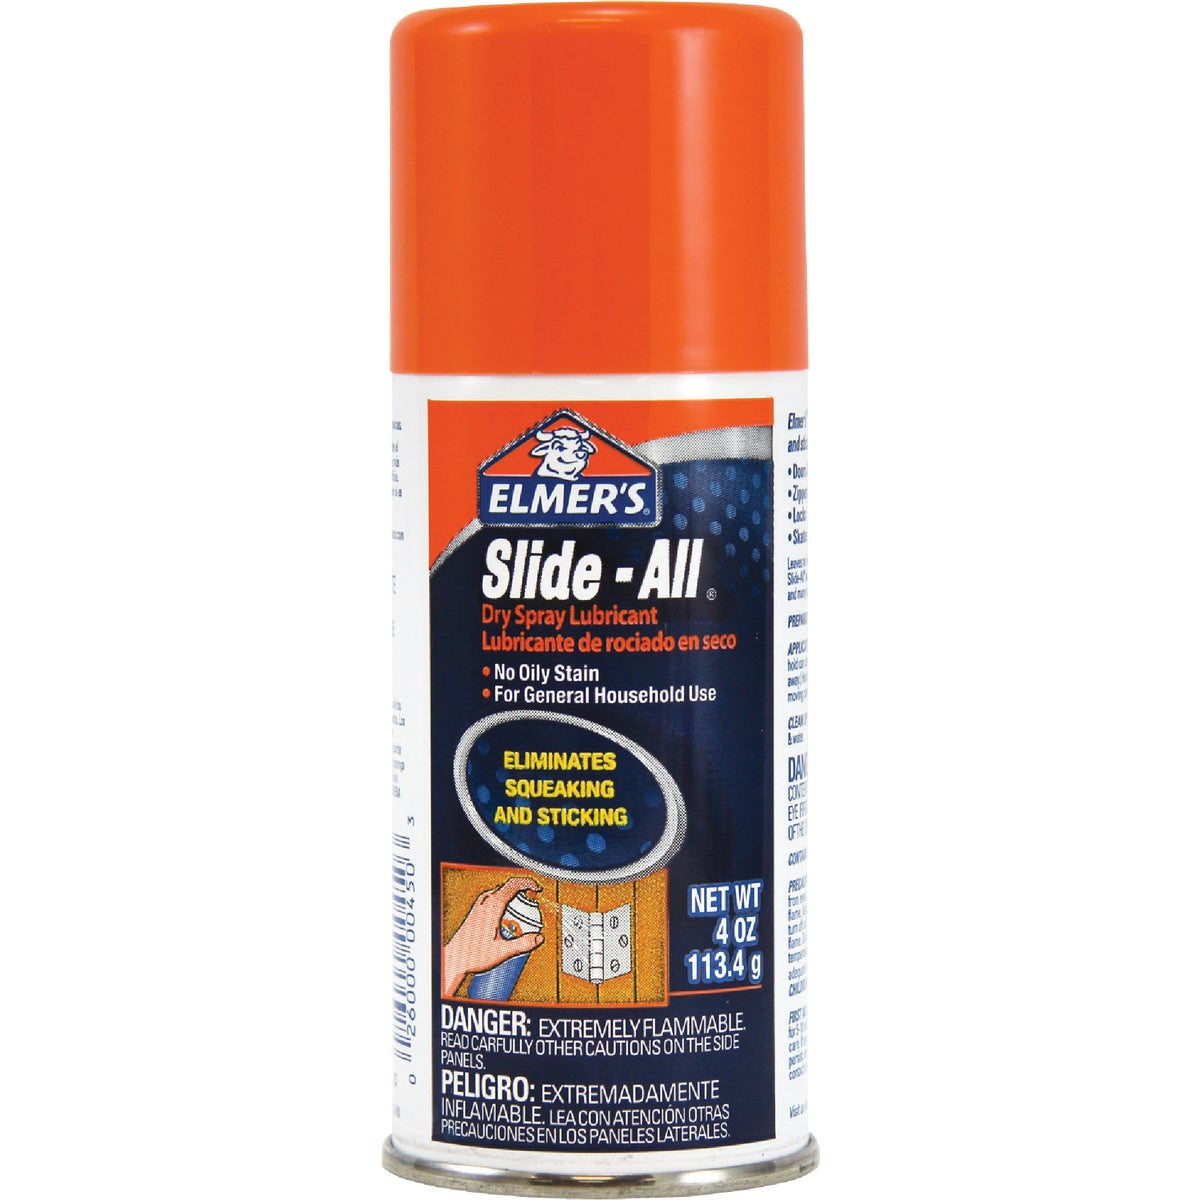 4OZ SPRAY LUBRICANT